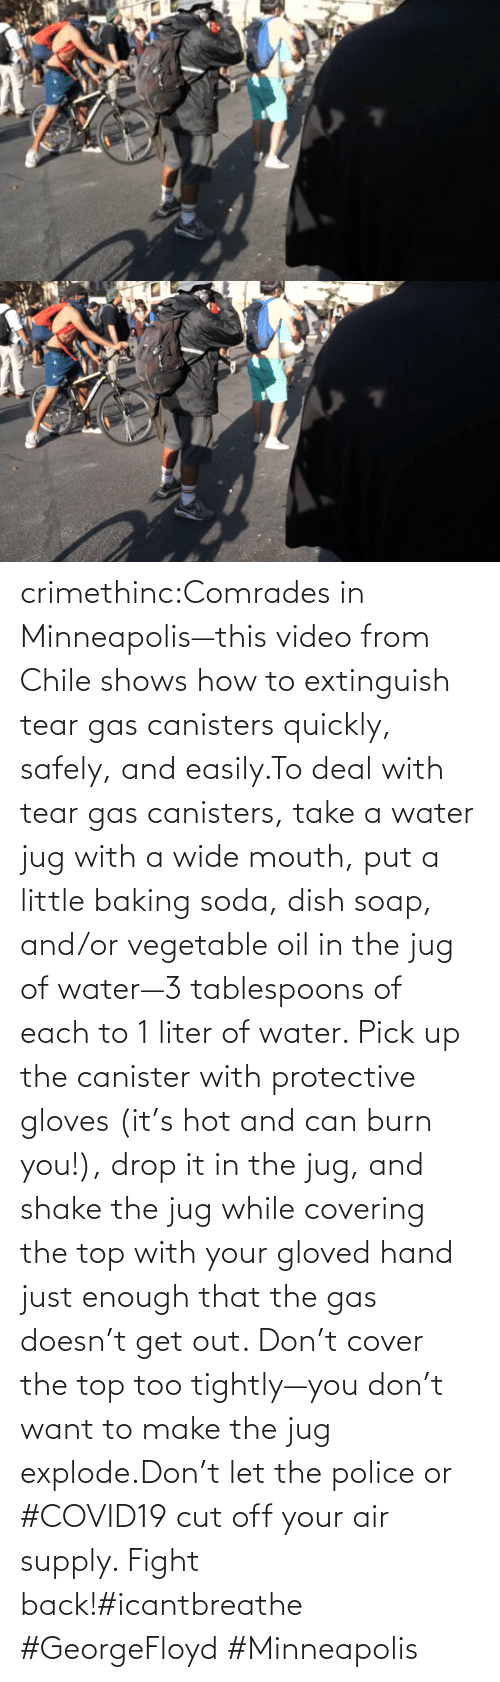 Fight: crimethinc:Comrades in Minneapolis—this video from Chile shows how to extinguish tear gas canisters quickly, safely, and easily.To deal with tear gas canisters, take a water jug with a wide mouth, put a little baking soda, dish soap, and/or vegetable oil in the jug of water—3 tablespoons of each to 1 liter of water. Pick up the canister with protective gloves (it's hot and can burn you!), drop it in the jug, and shake the jug while covering the top with your gloved hand just enough that the gas doesn't get out. Don't cover the top too tightly—you don't want to make the jug explode.Don't let the police or #COVID19 cut off your air supply. Fight back!#icantbreathe #GeorgeFloyd #Minneapolis